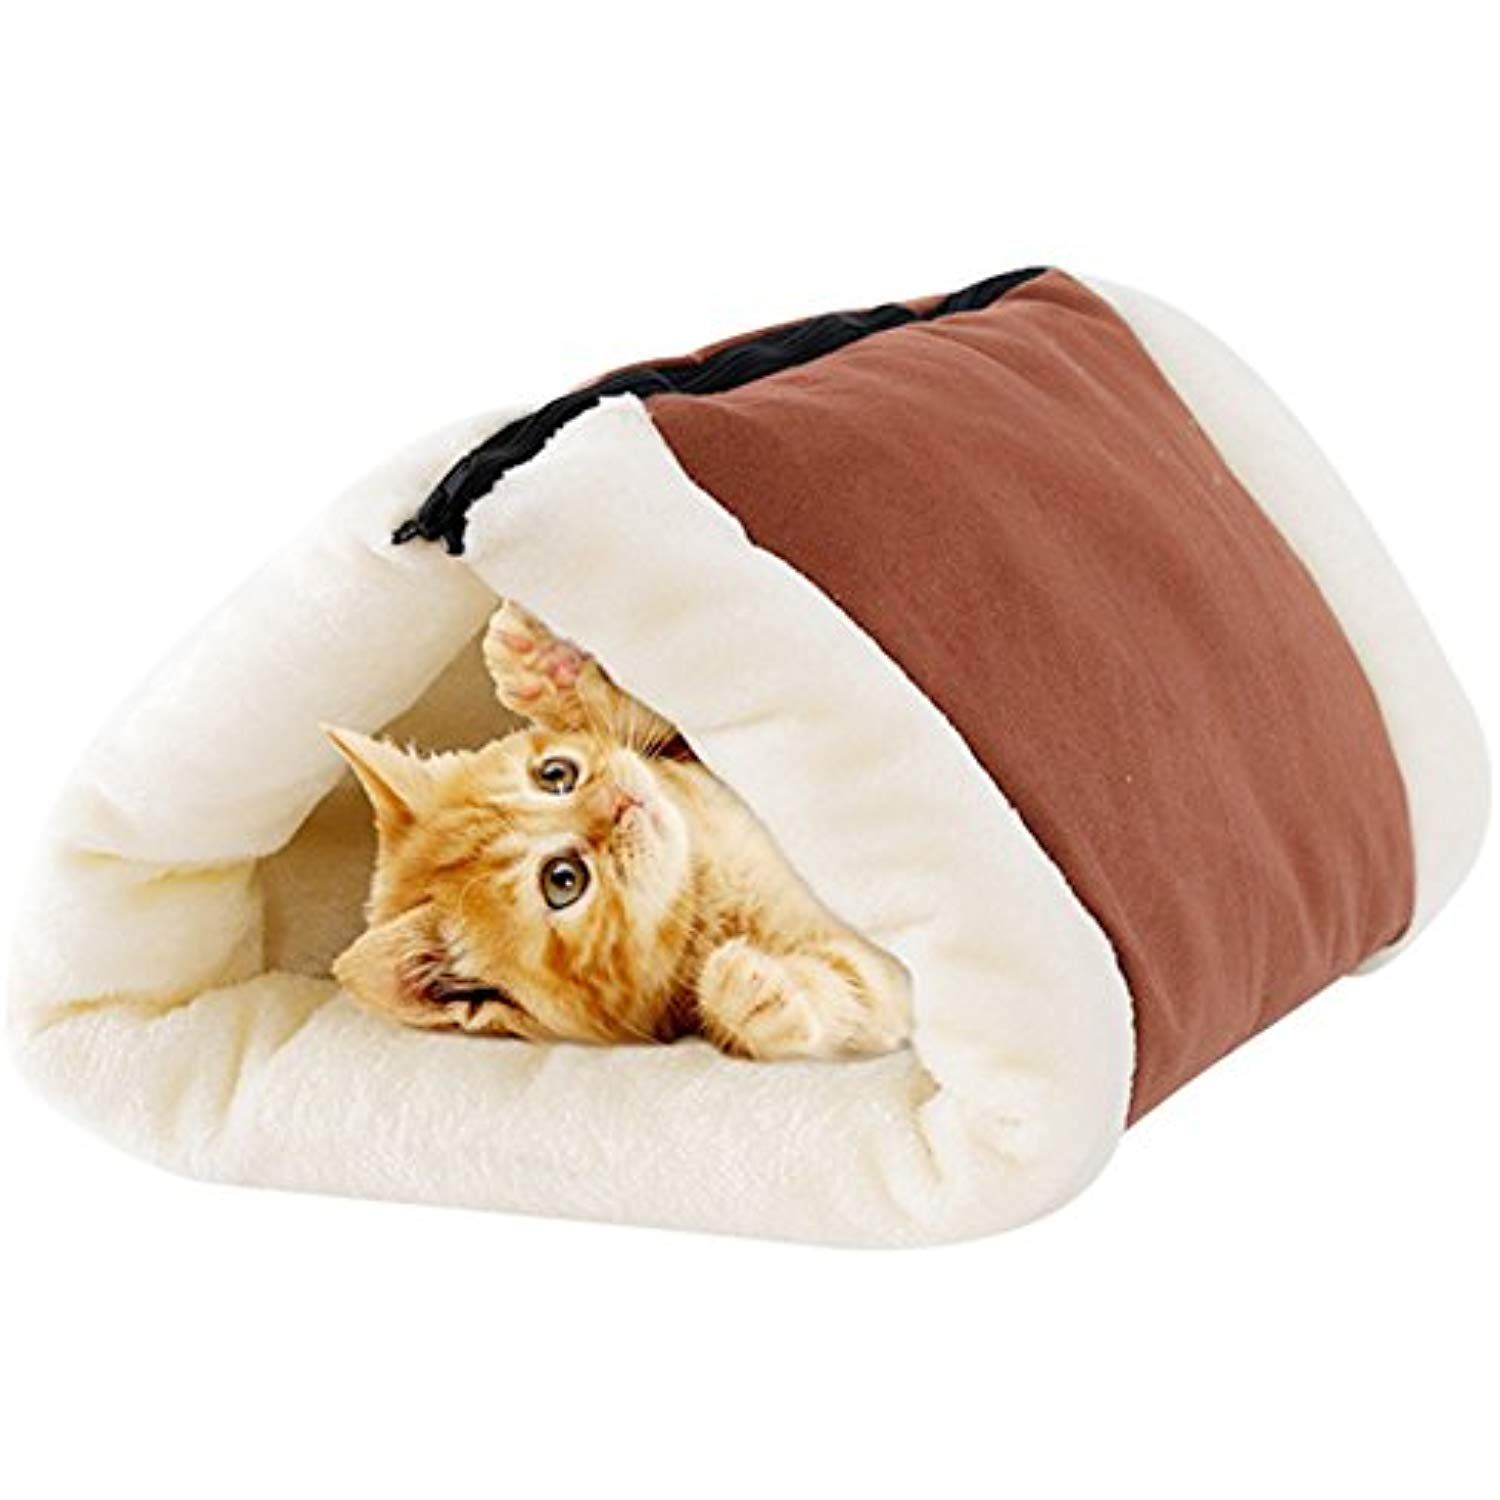 2 In 1 Cat Pet Bed Mw Tunnel Fleece Tube Indoor Cushion Mat Pyramid Pad For Dog Puppy Kitten Kitty Kennel Crate Cage Shack House Pet Beds Cat Dog Pads Cat Bed